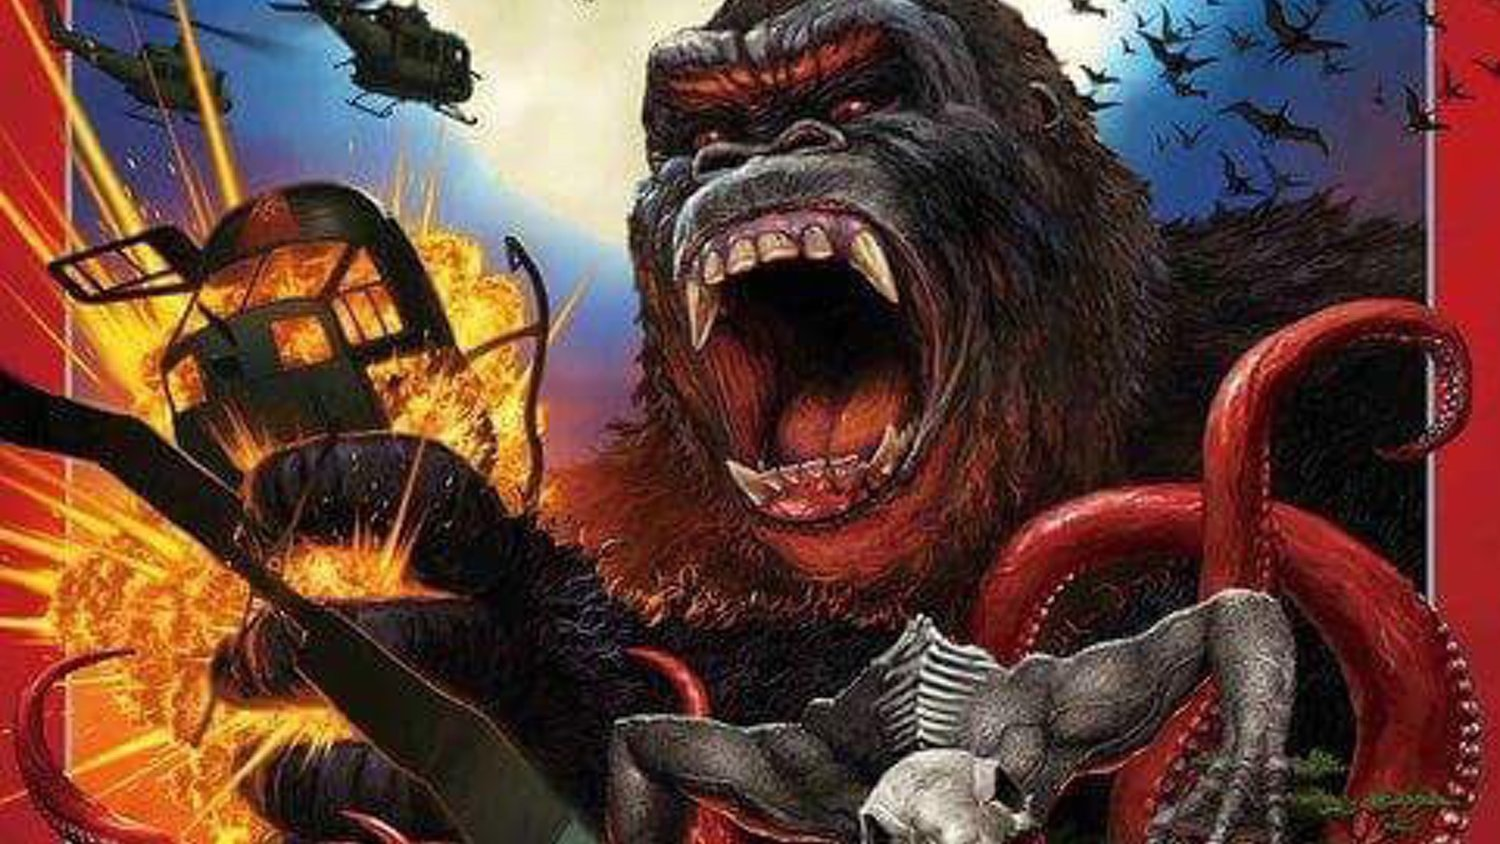 Japan's Poster Art for KONG: SKULL ISLAND Has an Awesome Classic Feel